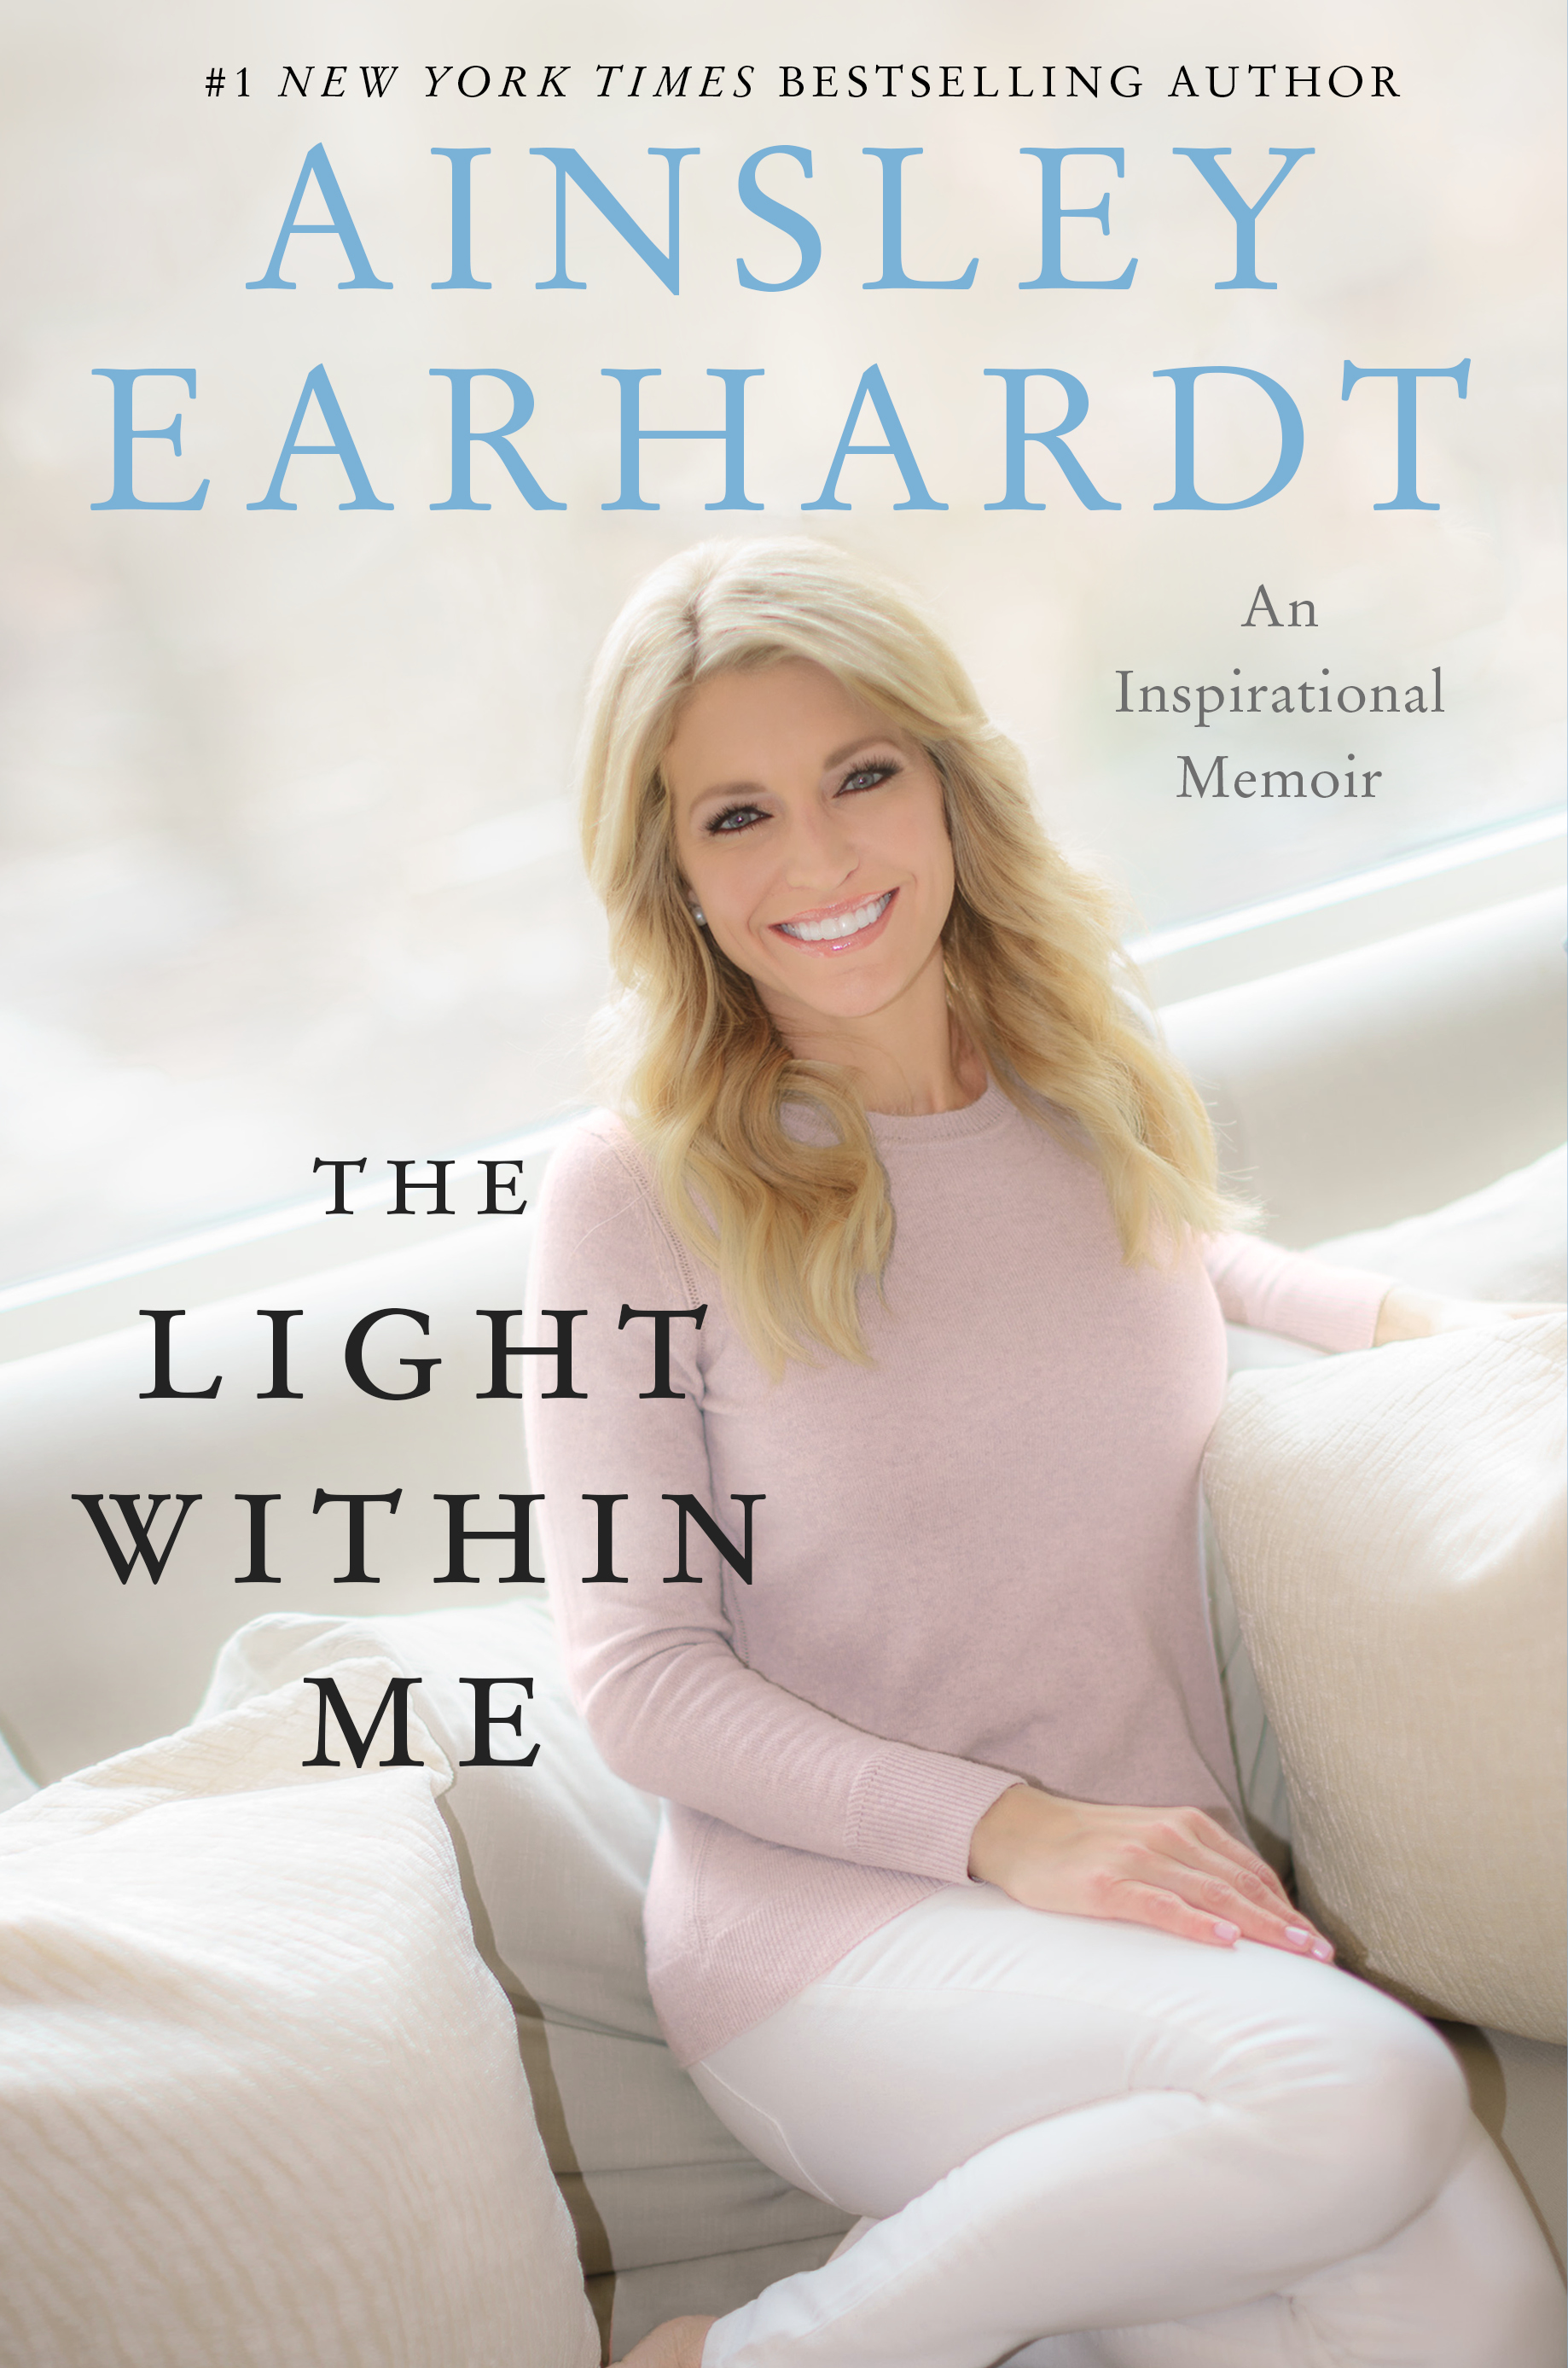 Ainsley Earhardt, The Light Within Me - an inspirational memoir